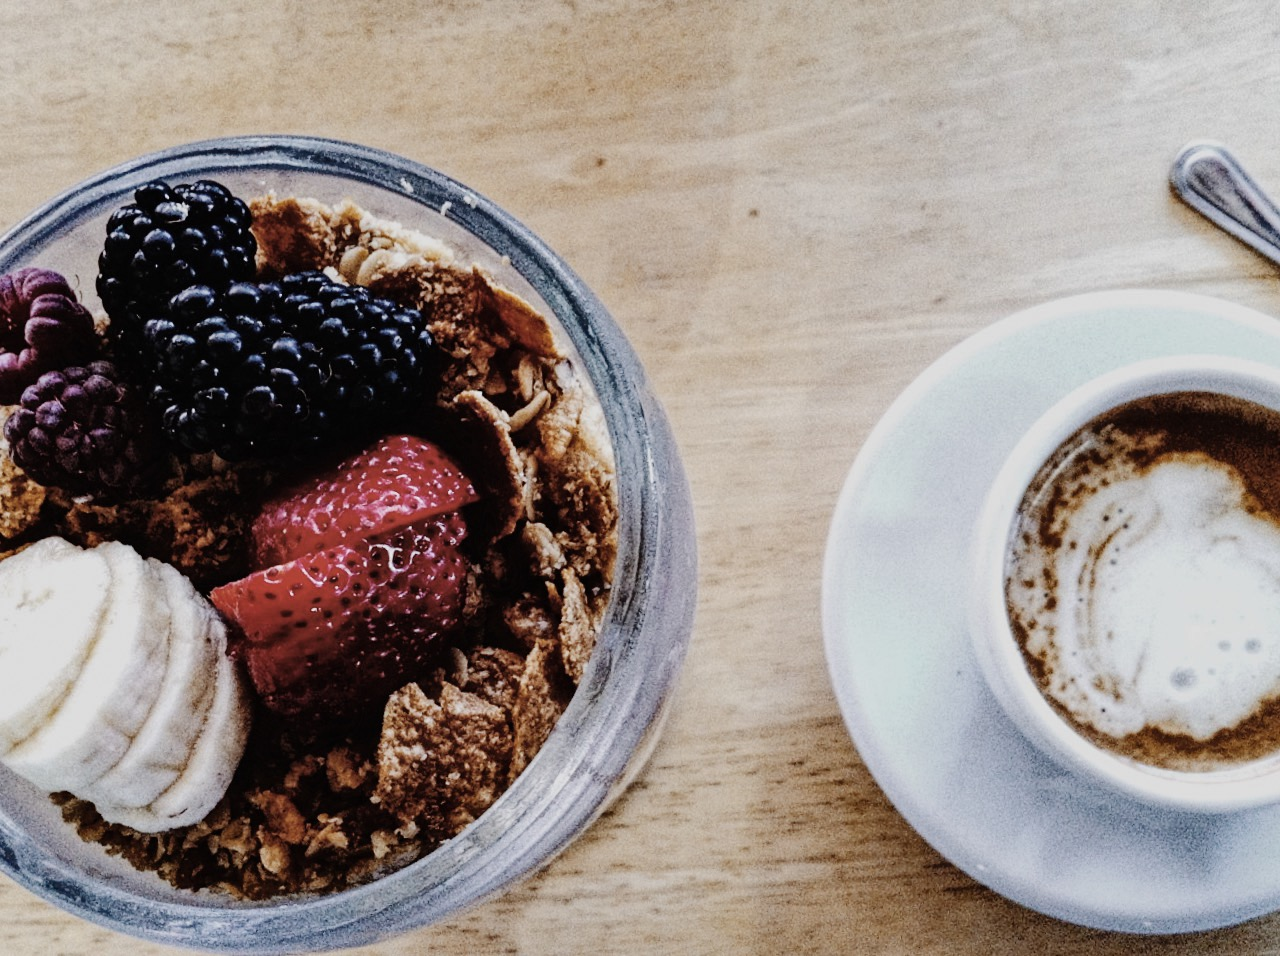 Sally Loo's Wholesome Cafe offers a variety of brunch items and coffee beverages. Pictured above is an acai bowl and cappuccino.